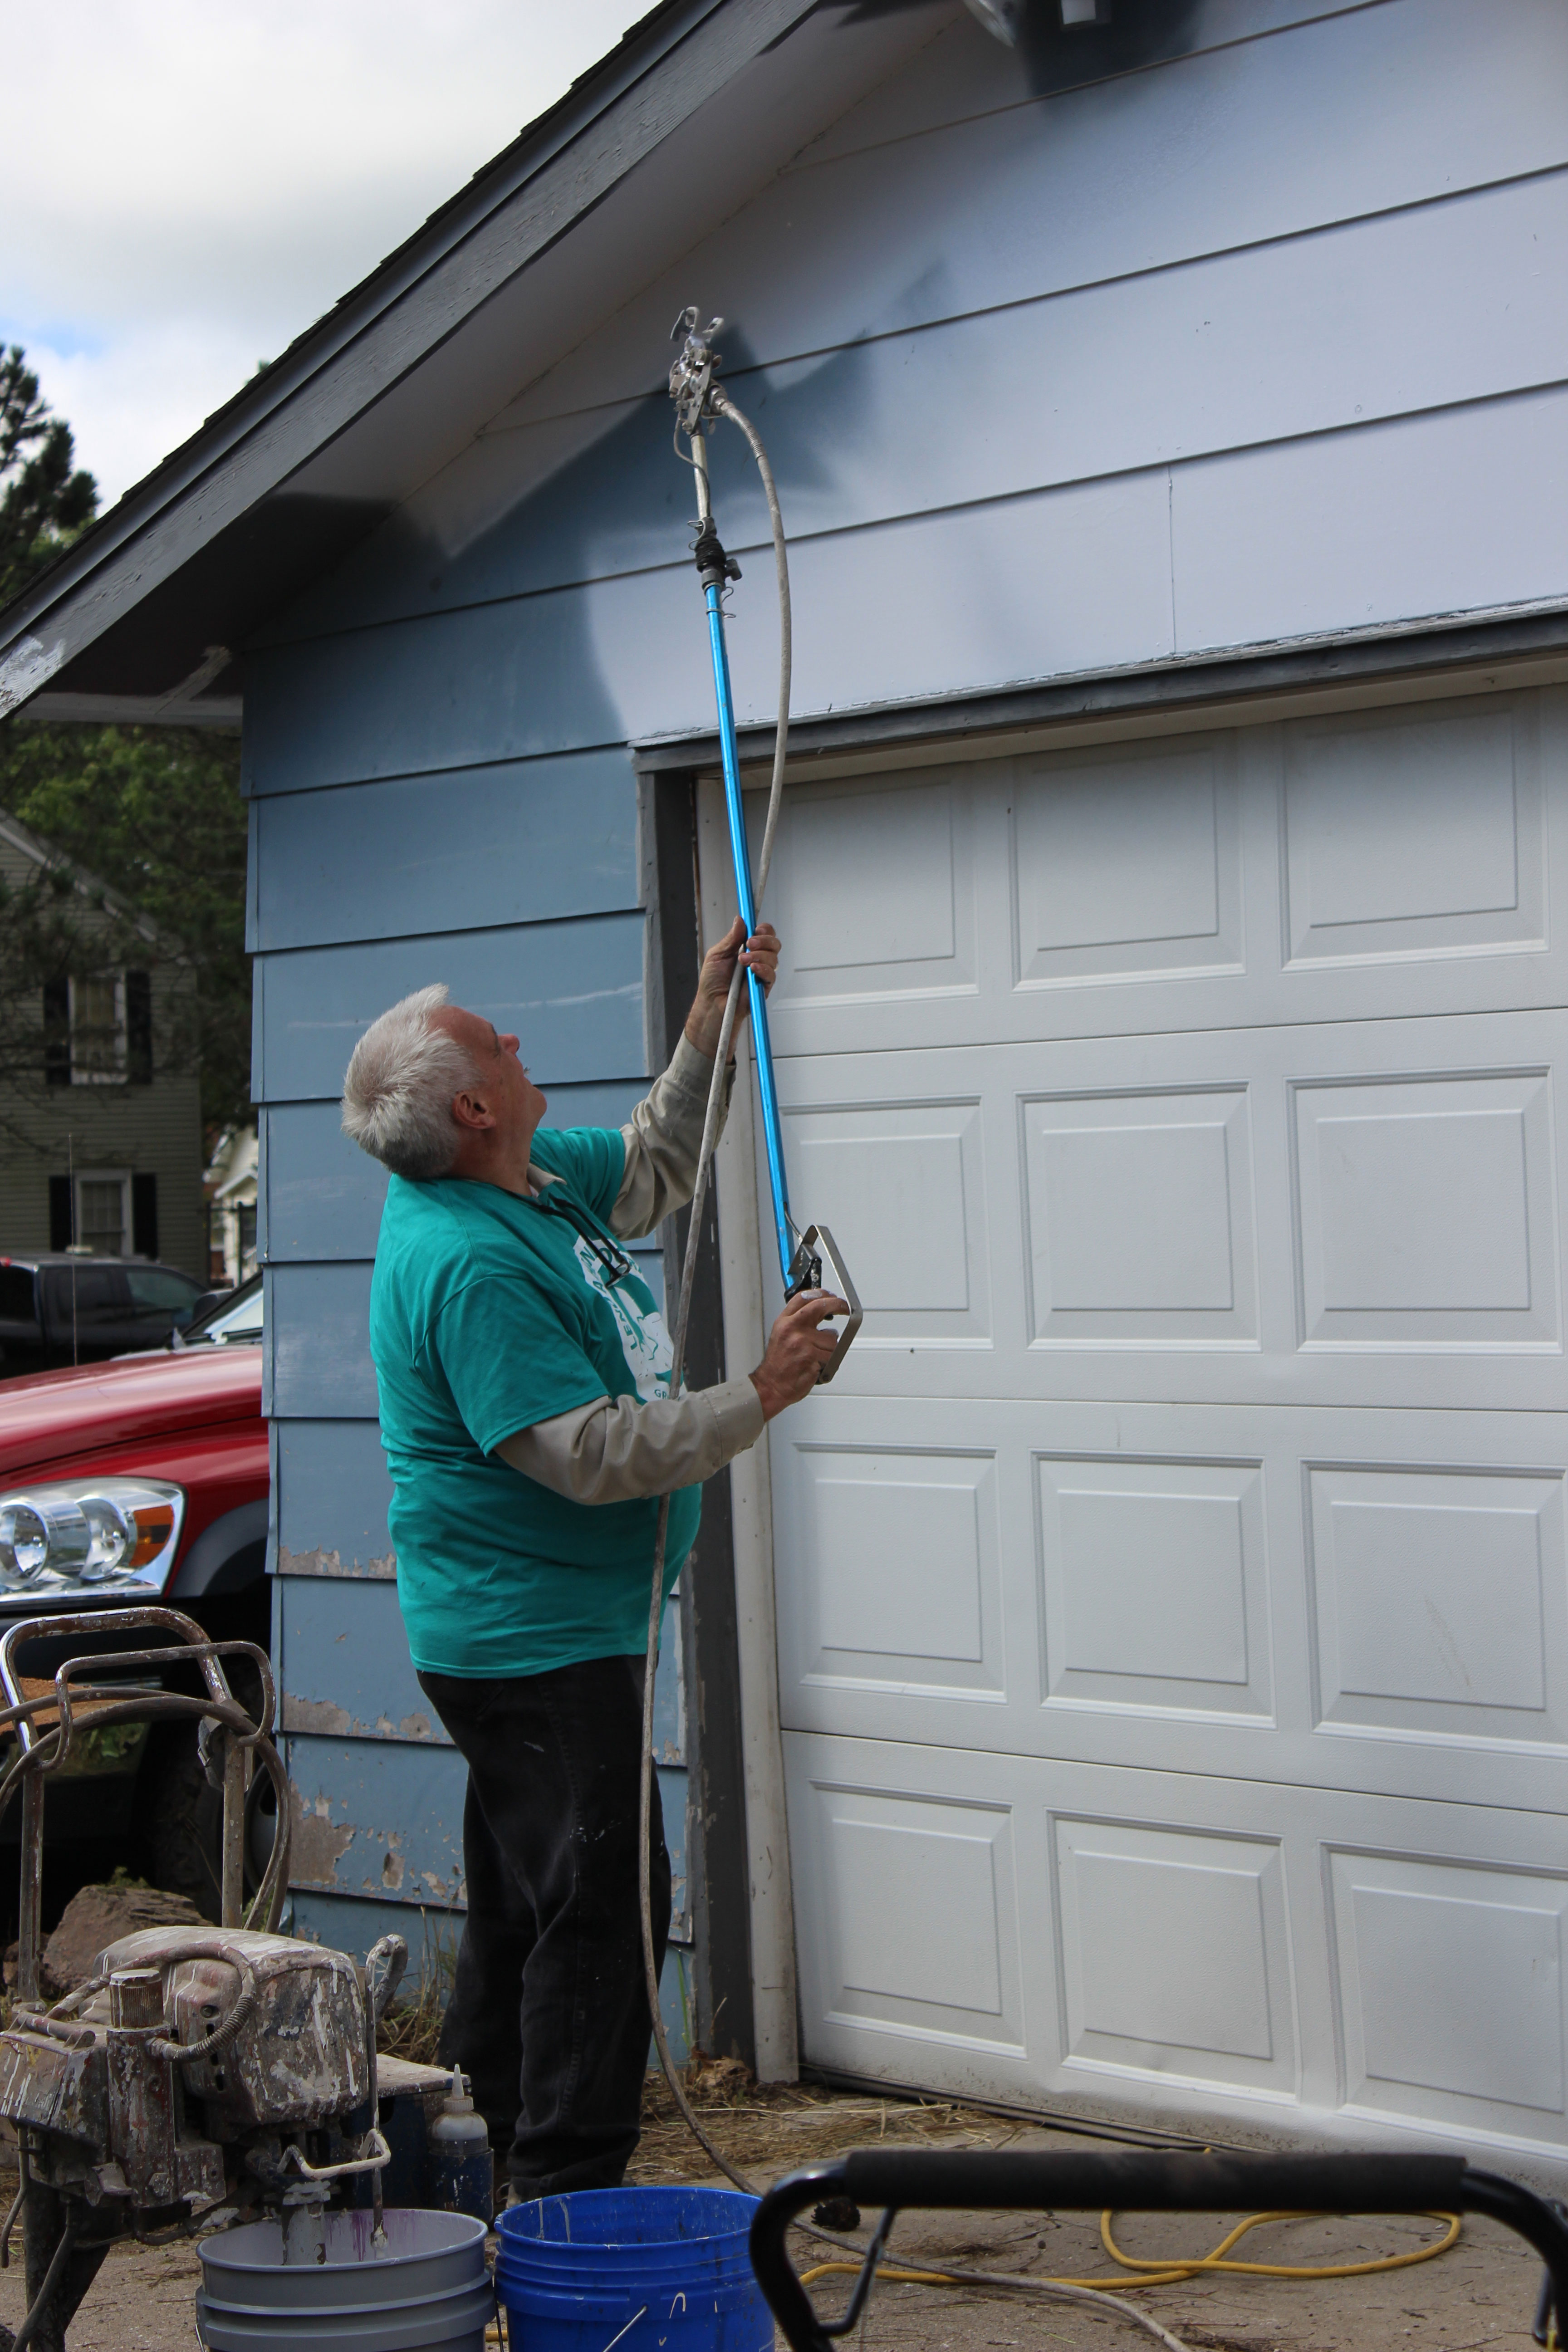 Facilities Associate, Curt Neumann paints the side of the garage